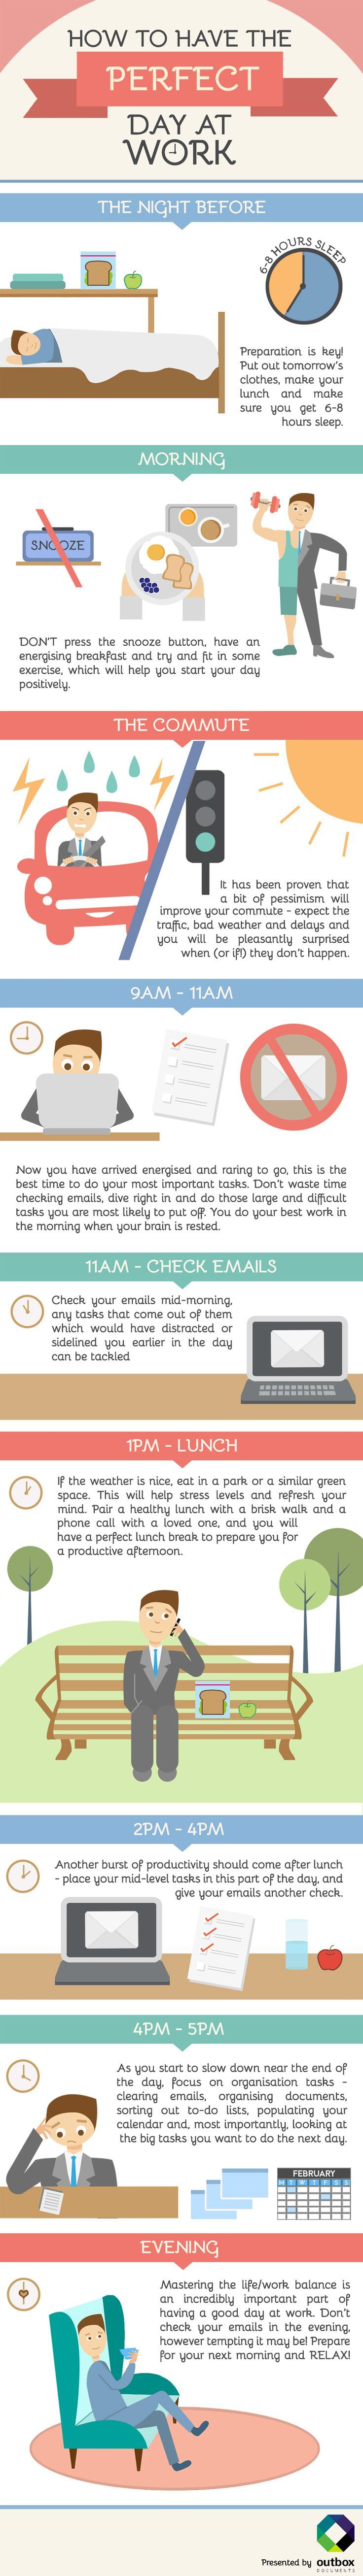 How do your days at work go? Do you find it's always a rush in the morning? Do you never get round to completing your most important tasks due to checking emails? We have created the guide below to having the perfect day at work